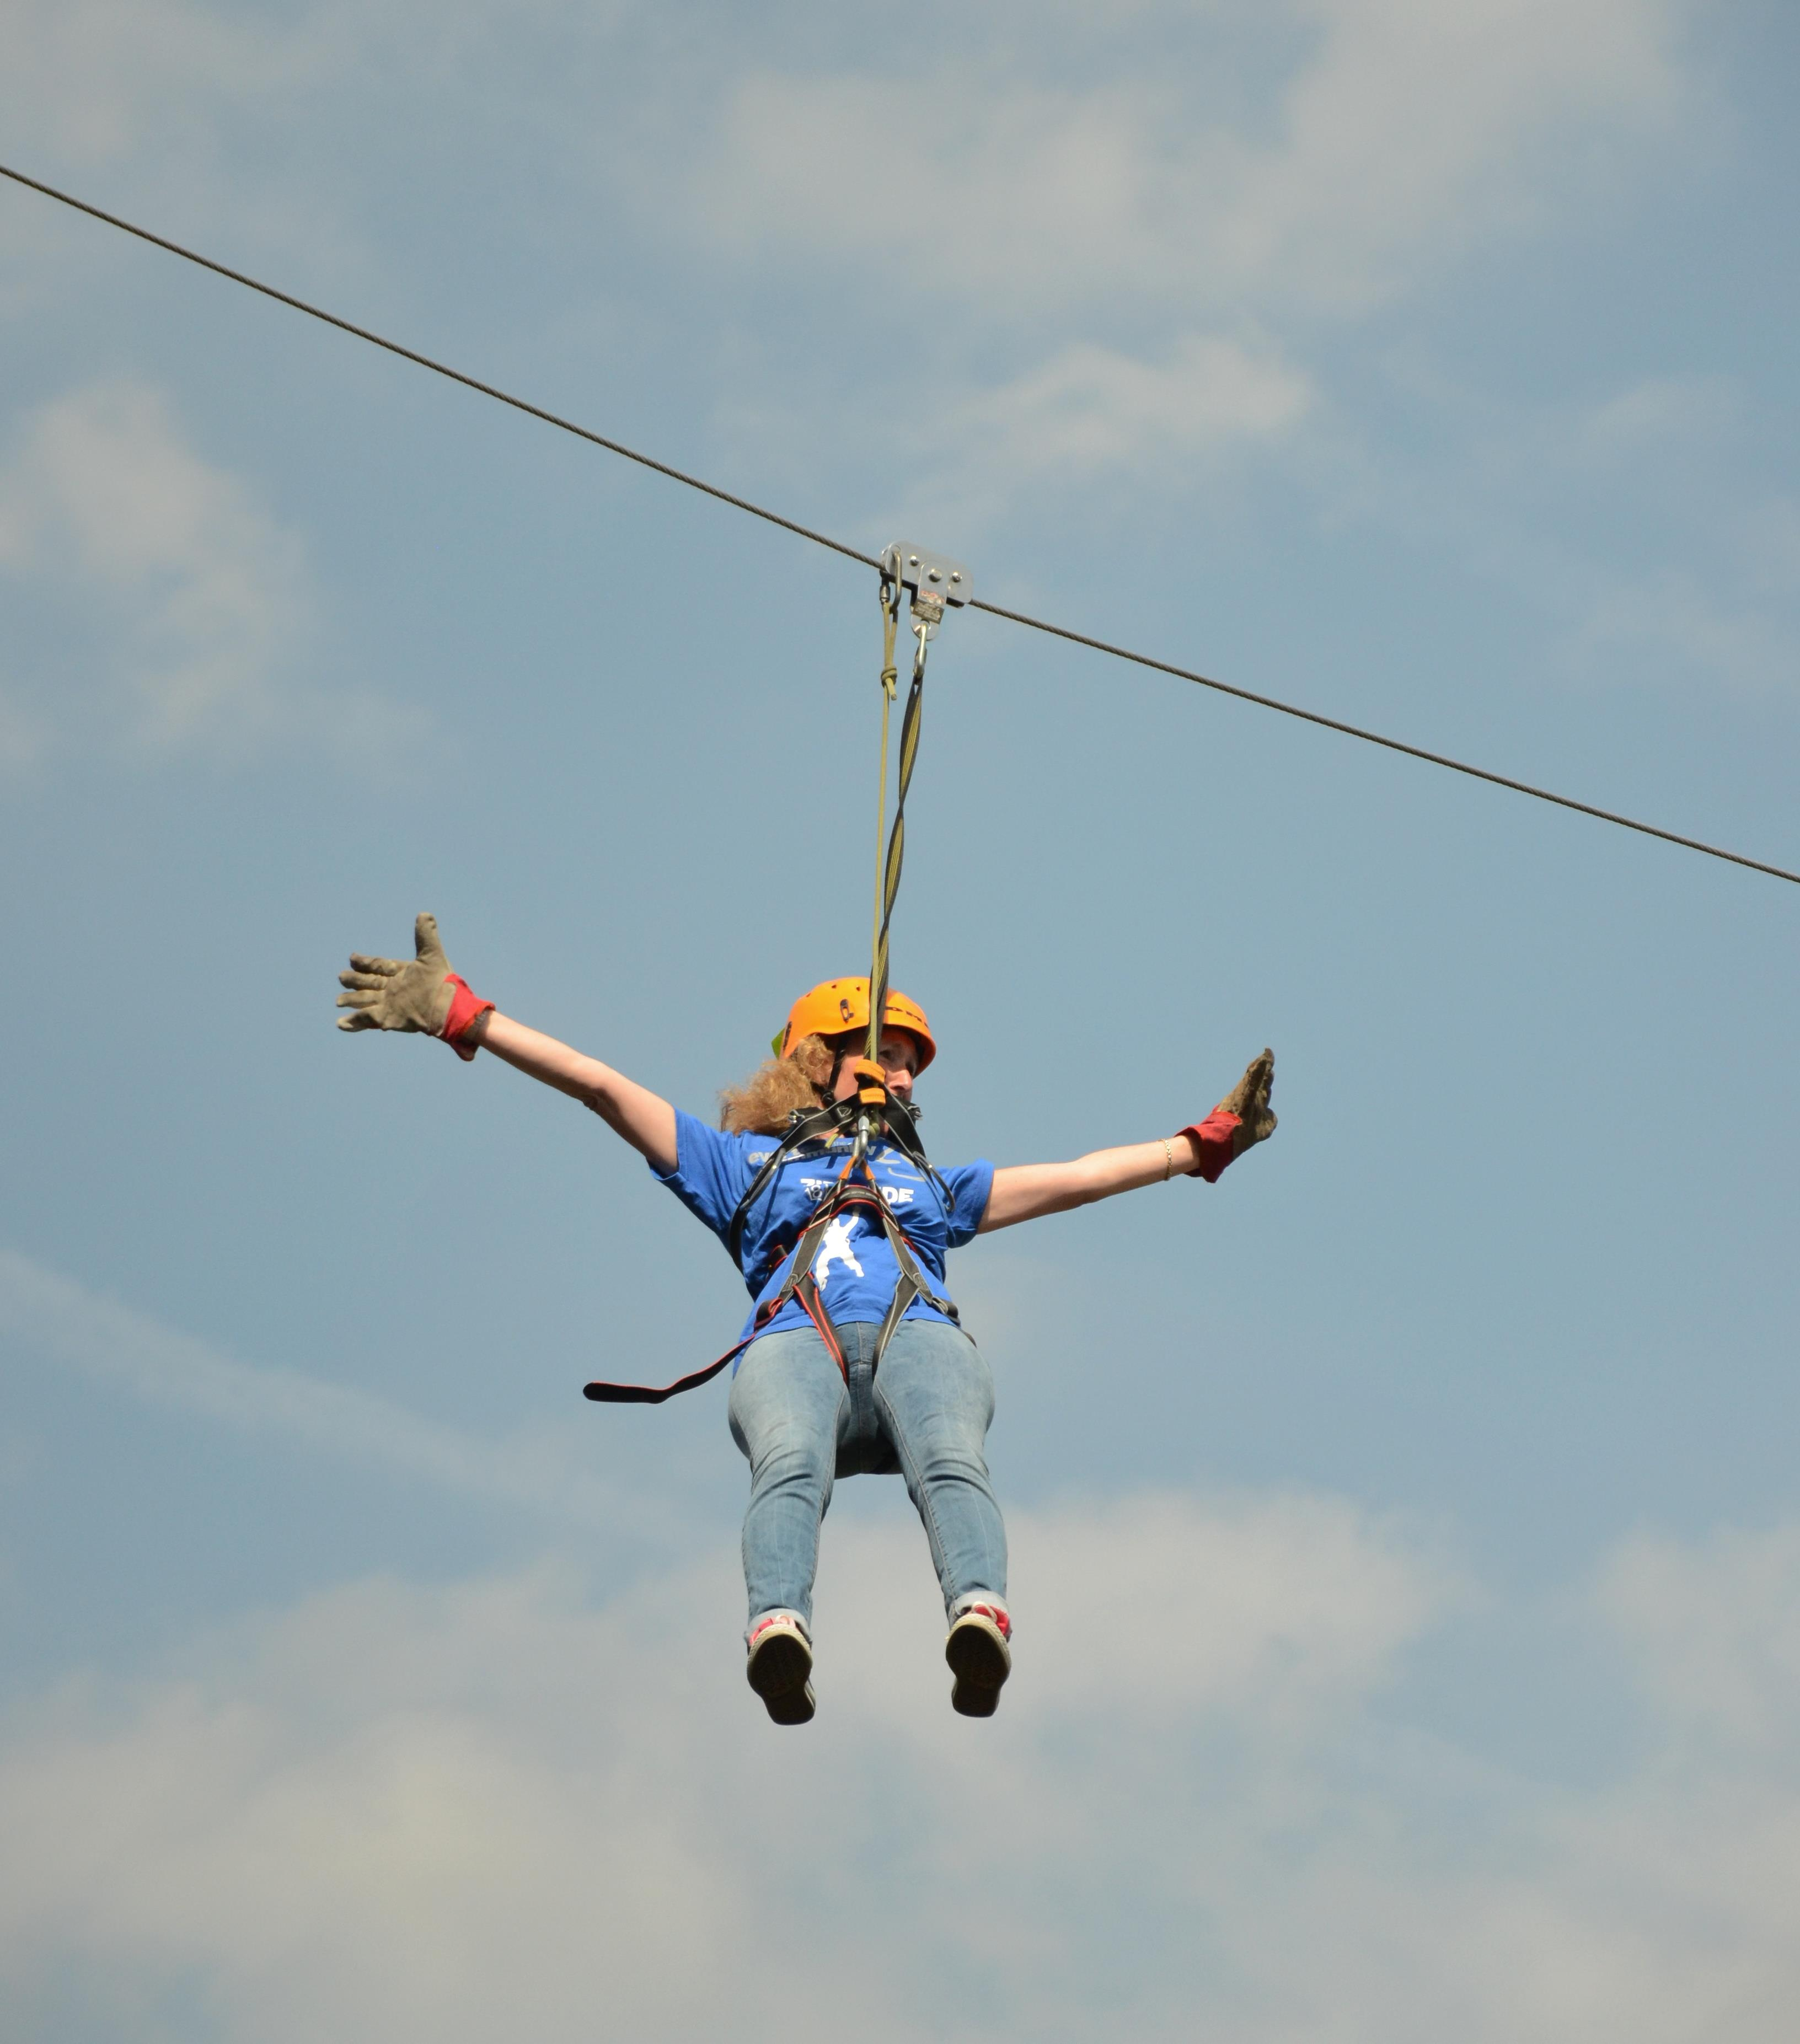 Zipping along raising money for Alder Hey